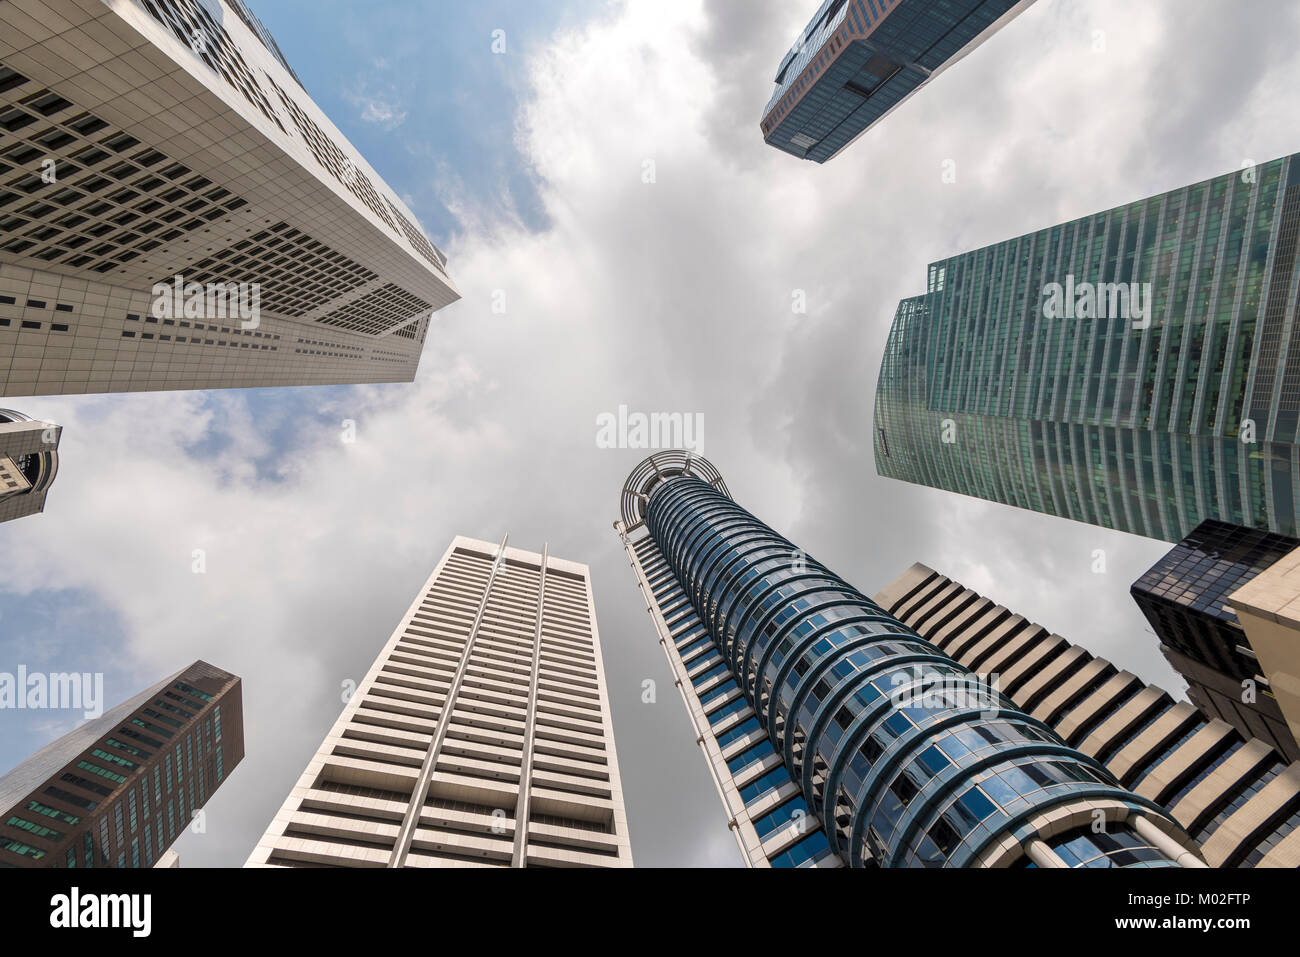 Office buildings in Raffles Place, Singapore - Stock Image